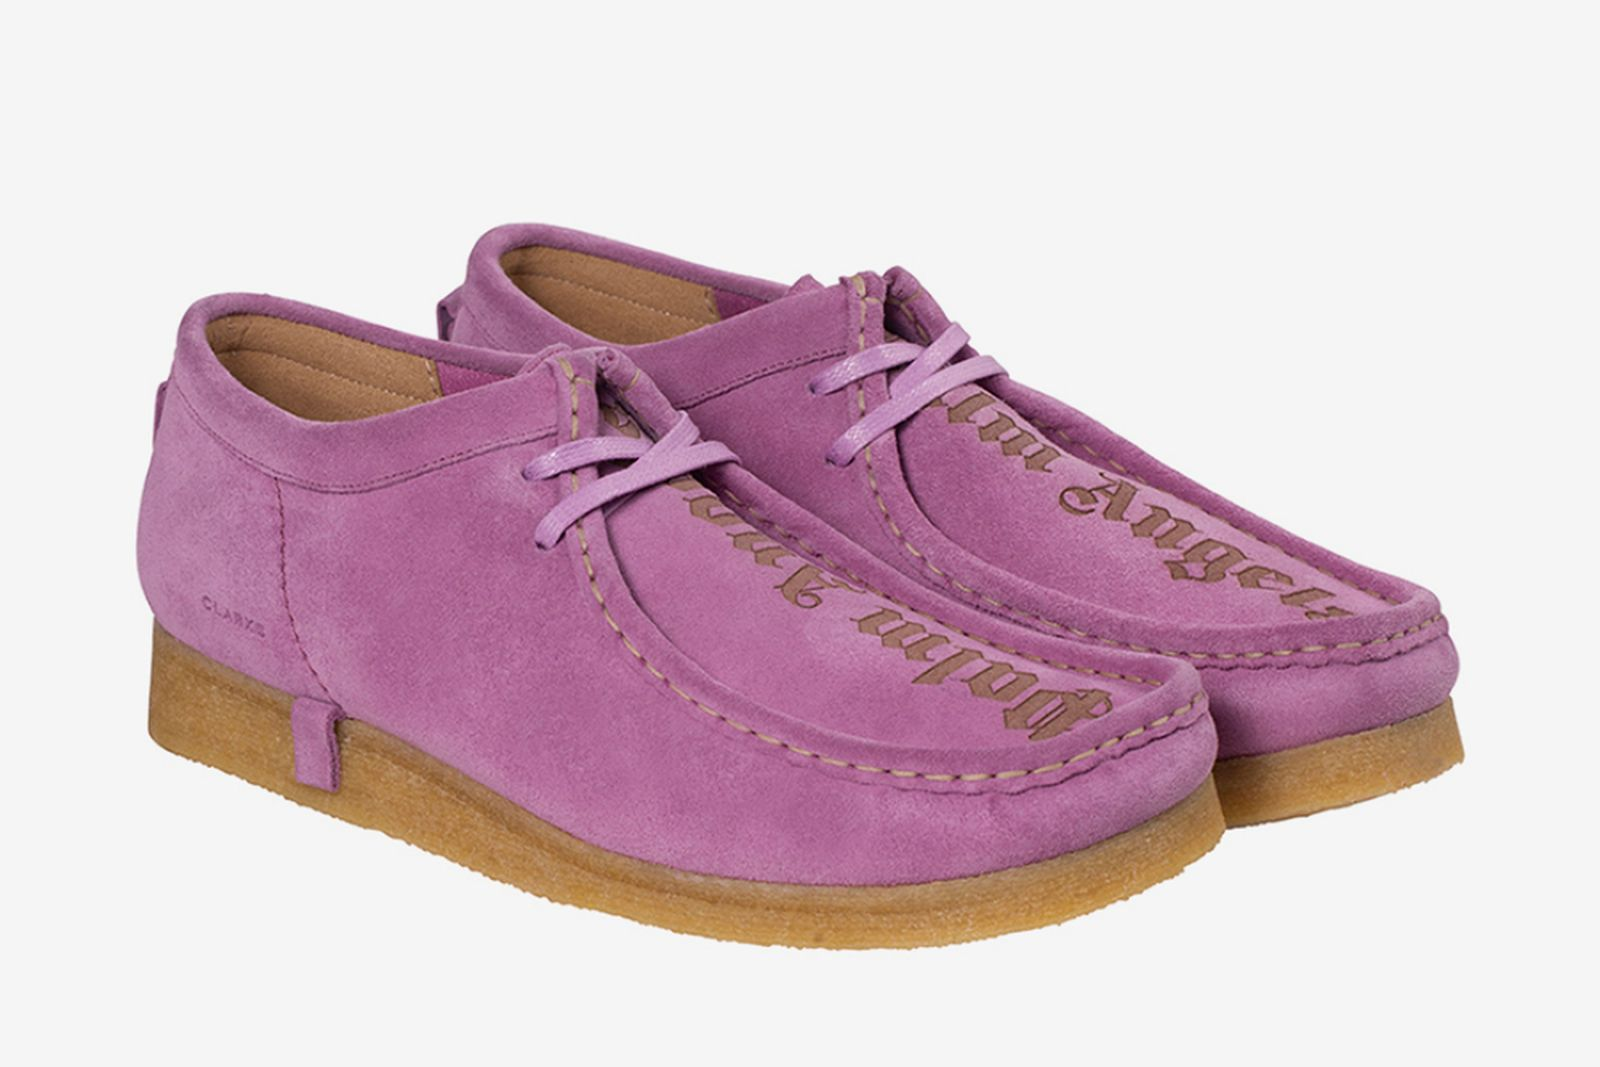 palm-angels-clarks-wallabee-release-date-price-1-04